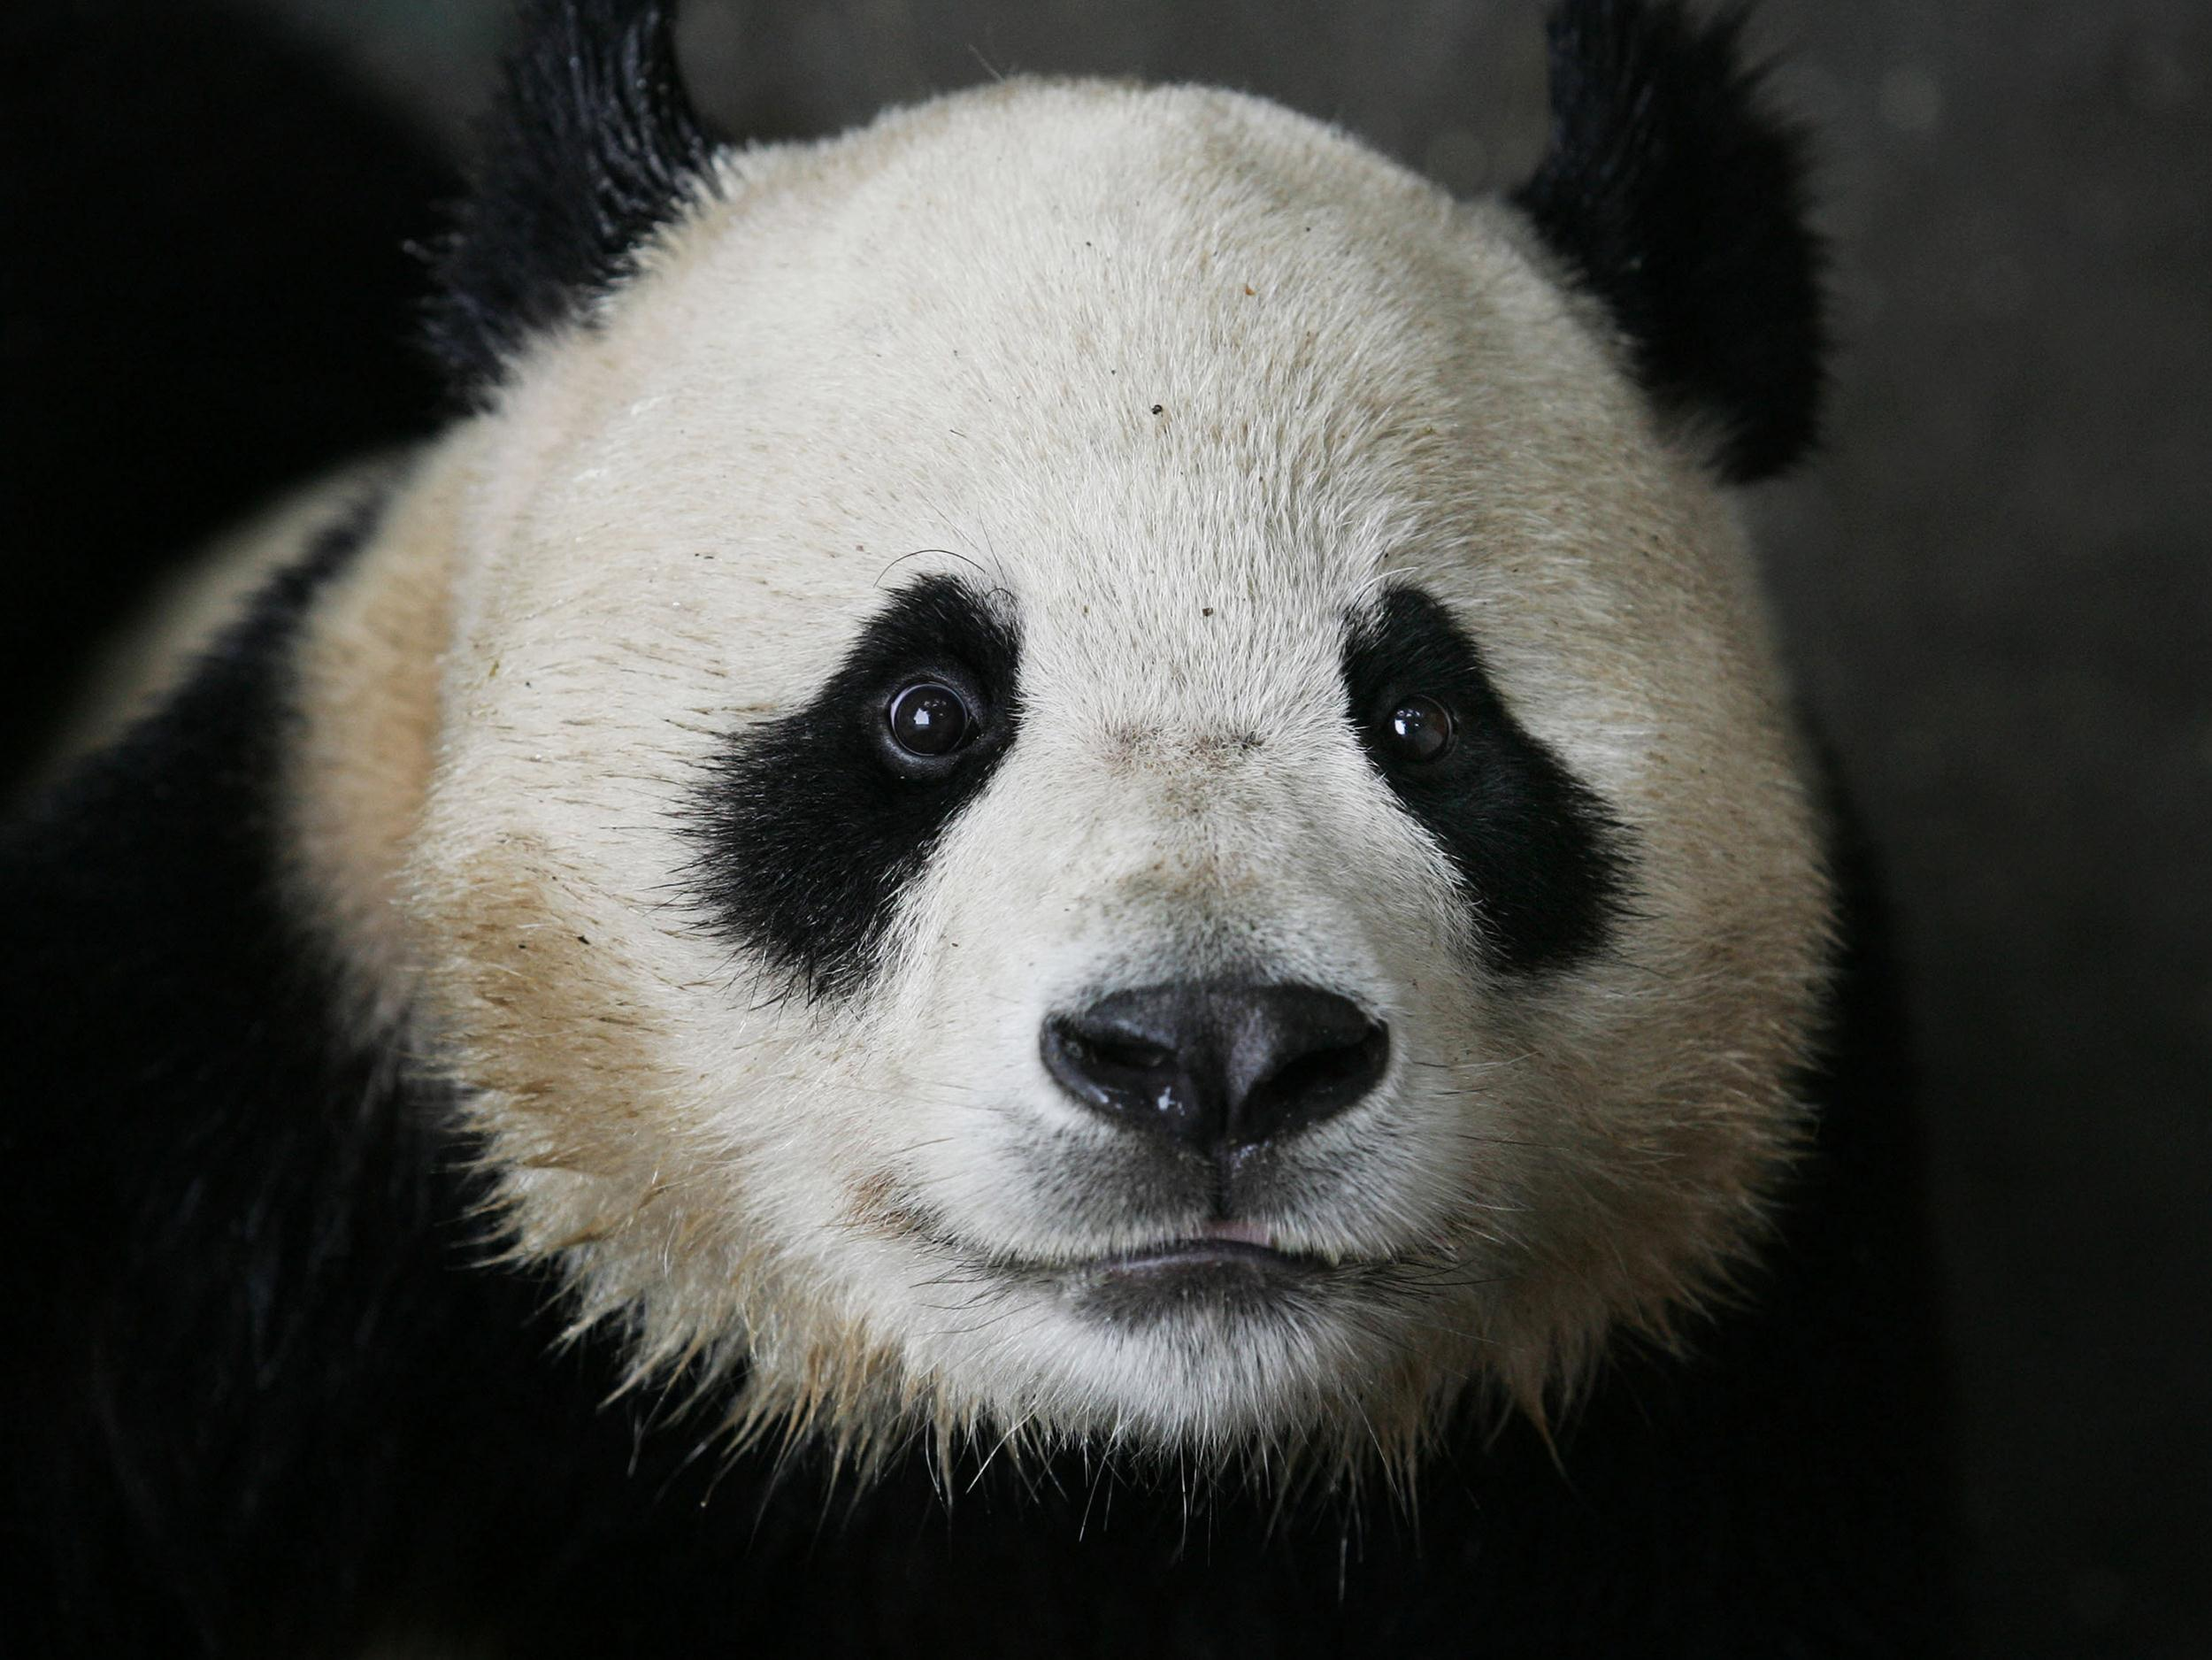 panda pictures hd wallpapers - photo #35